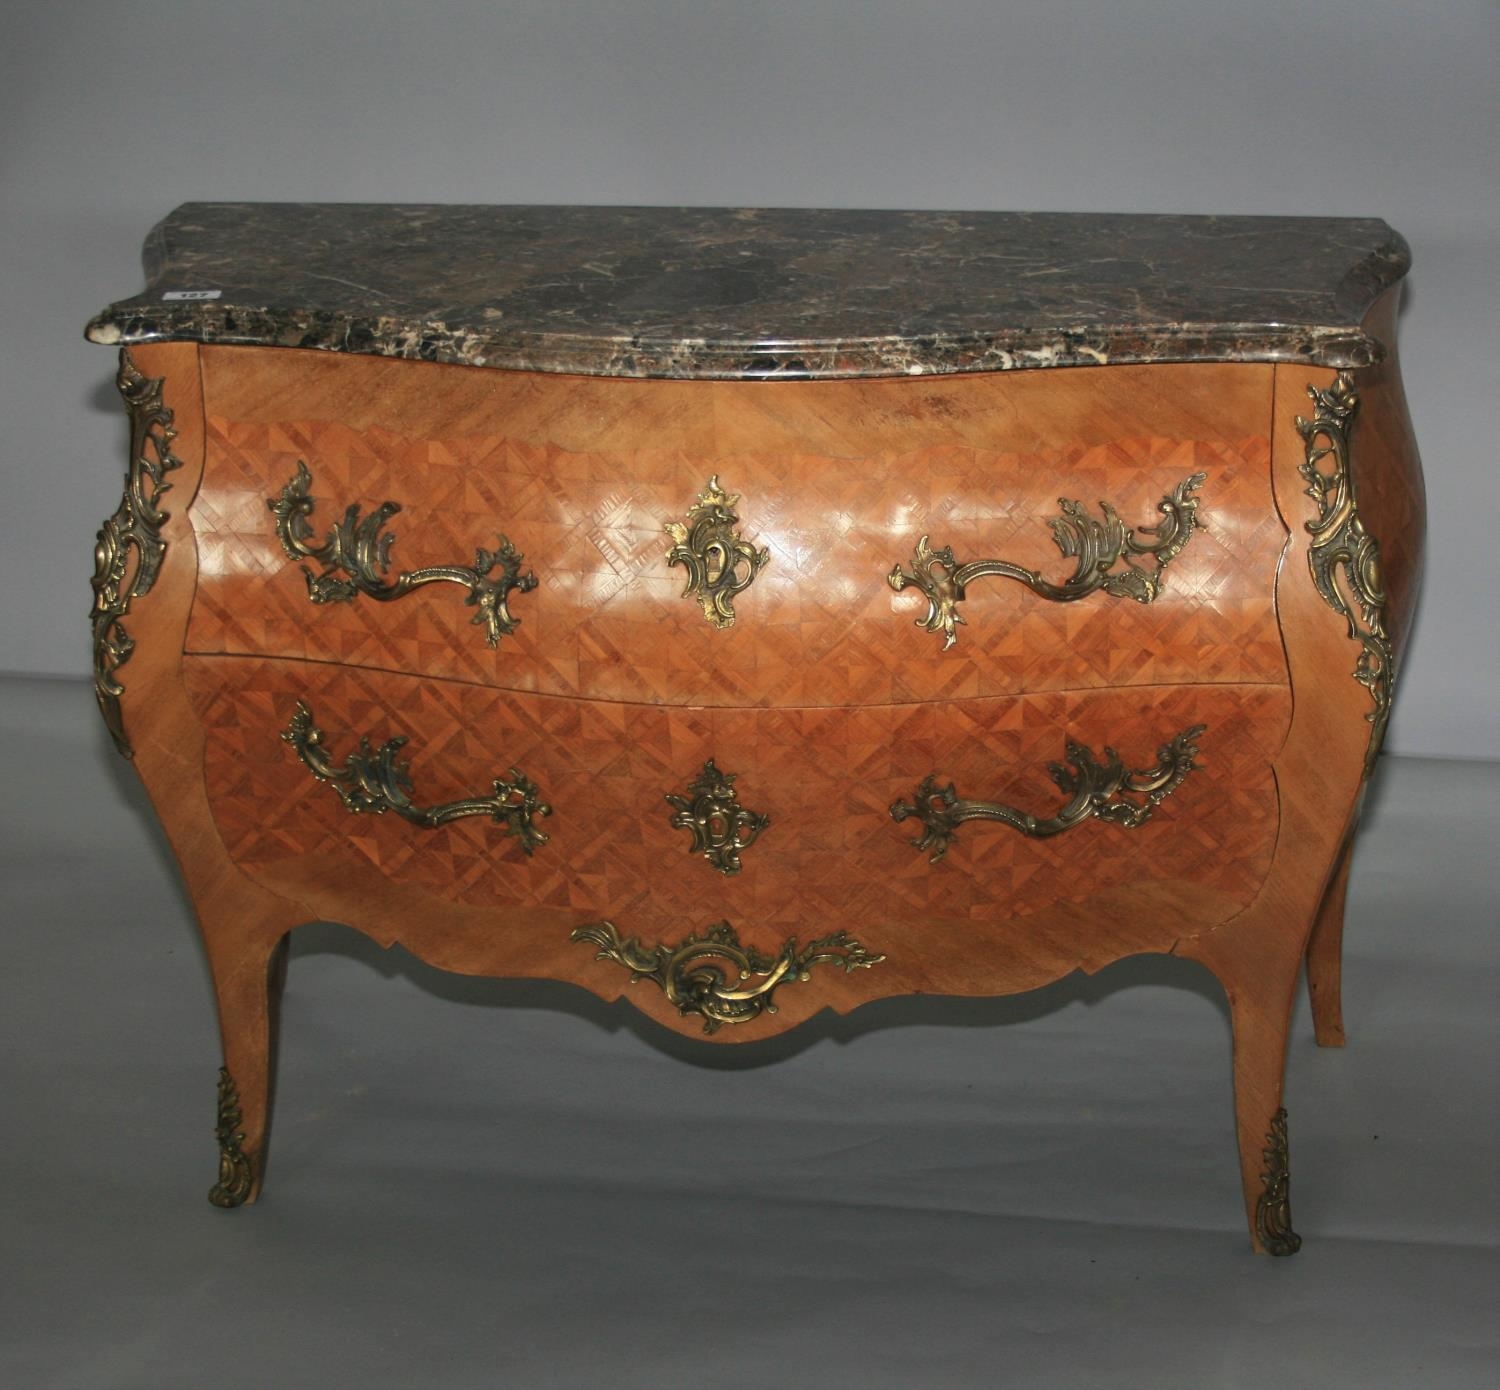 Fine quality antique serpentine commode with marble top above kingwood marquetry base with brass